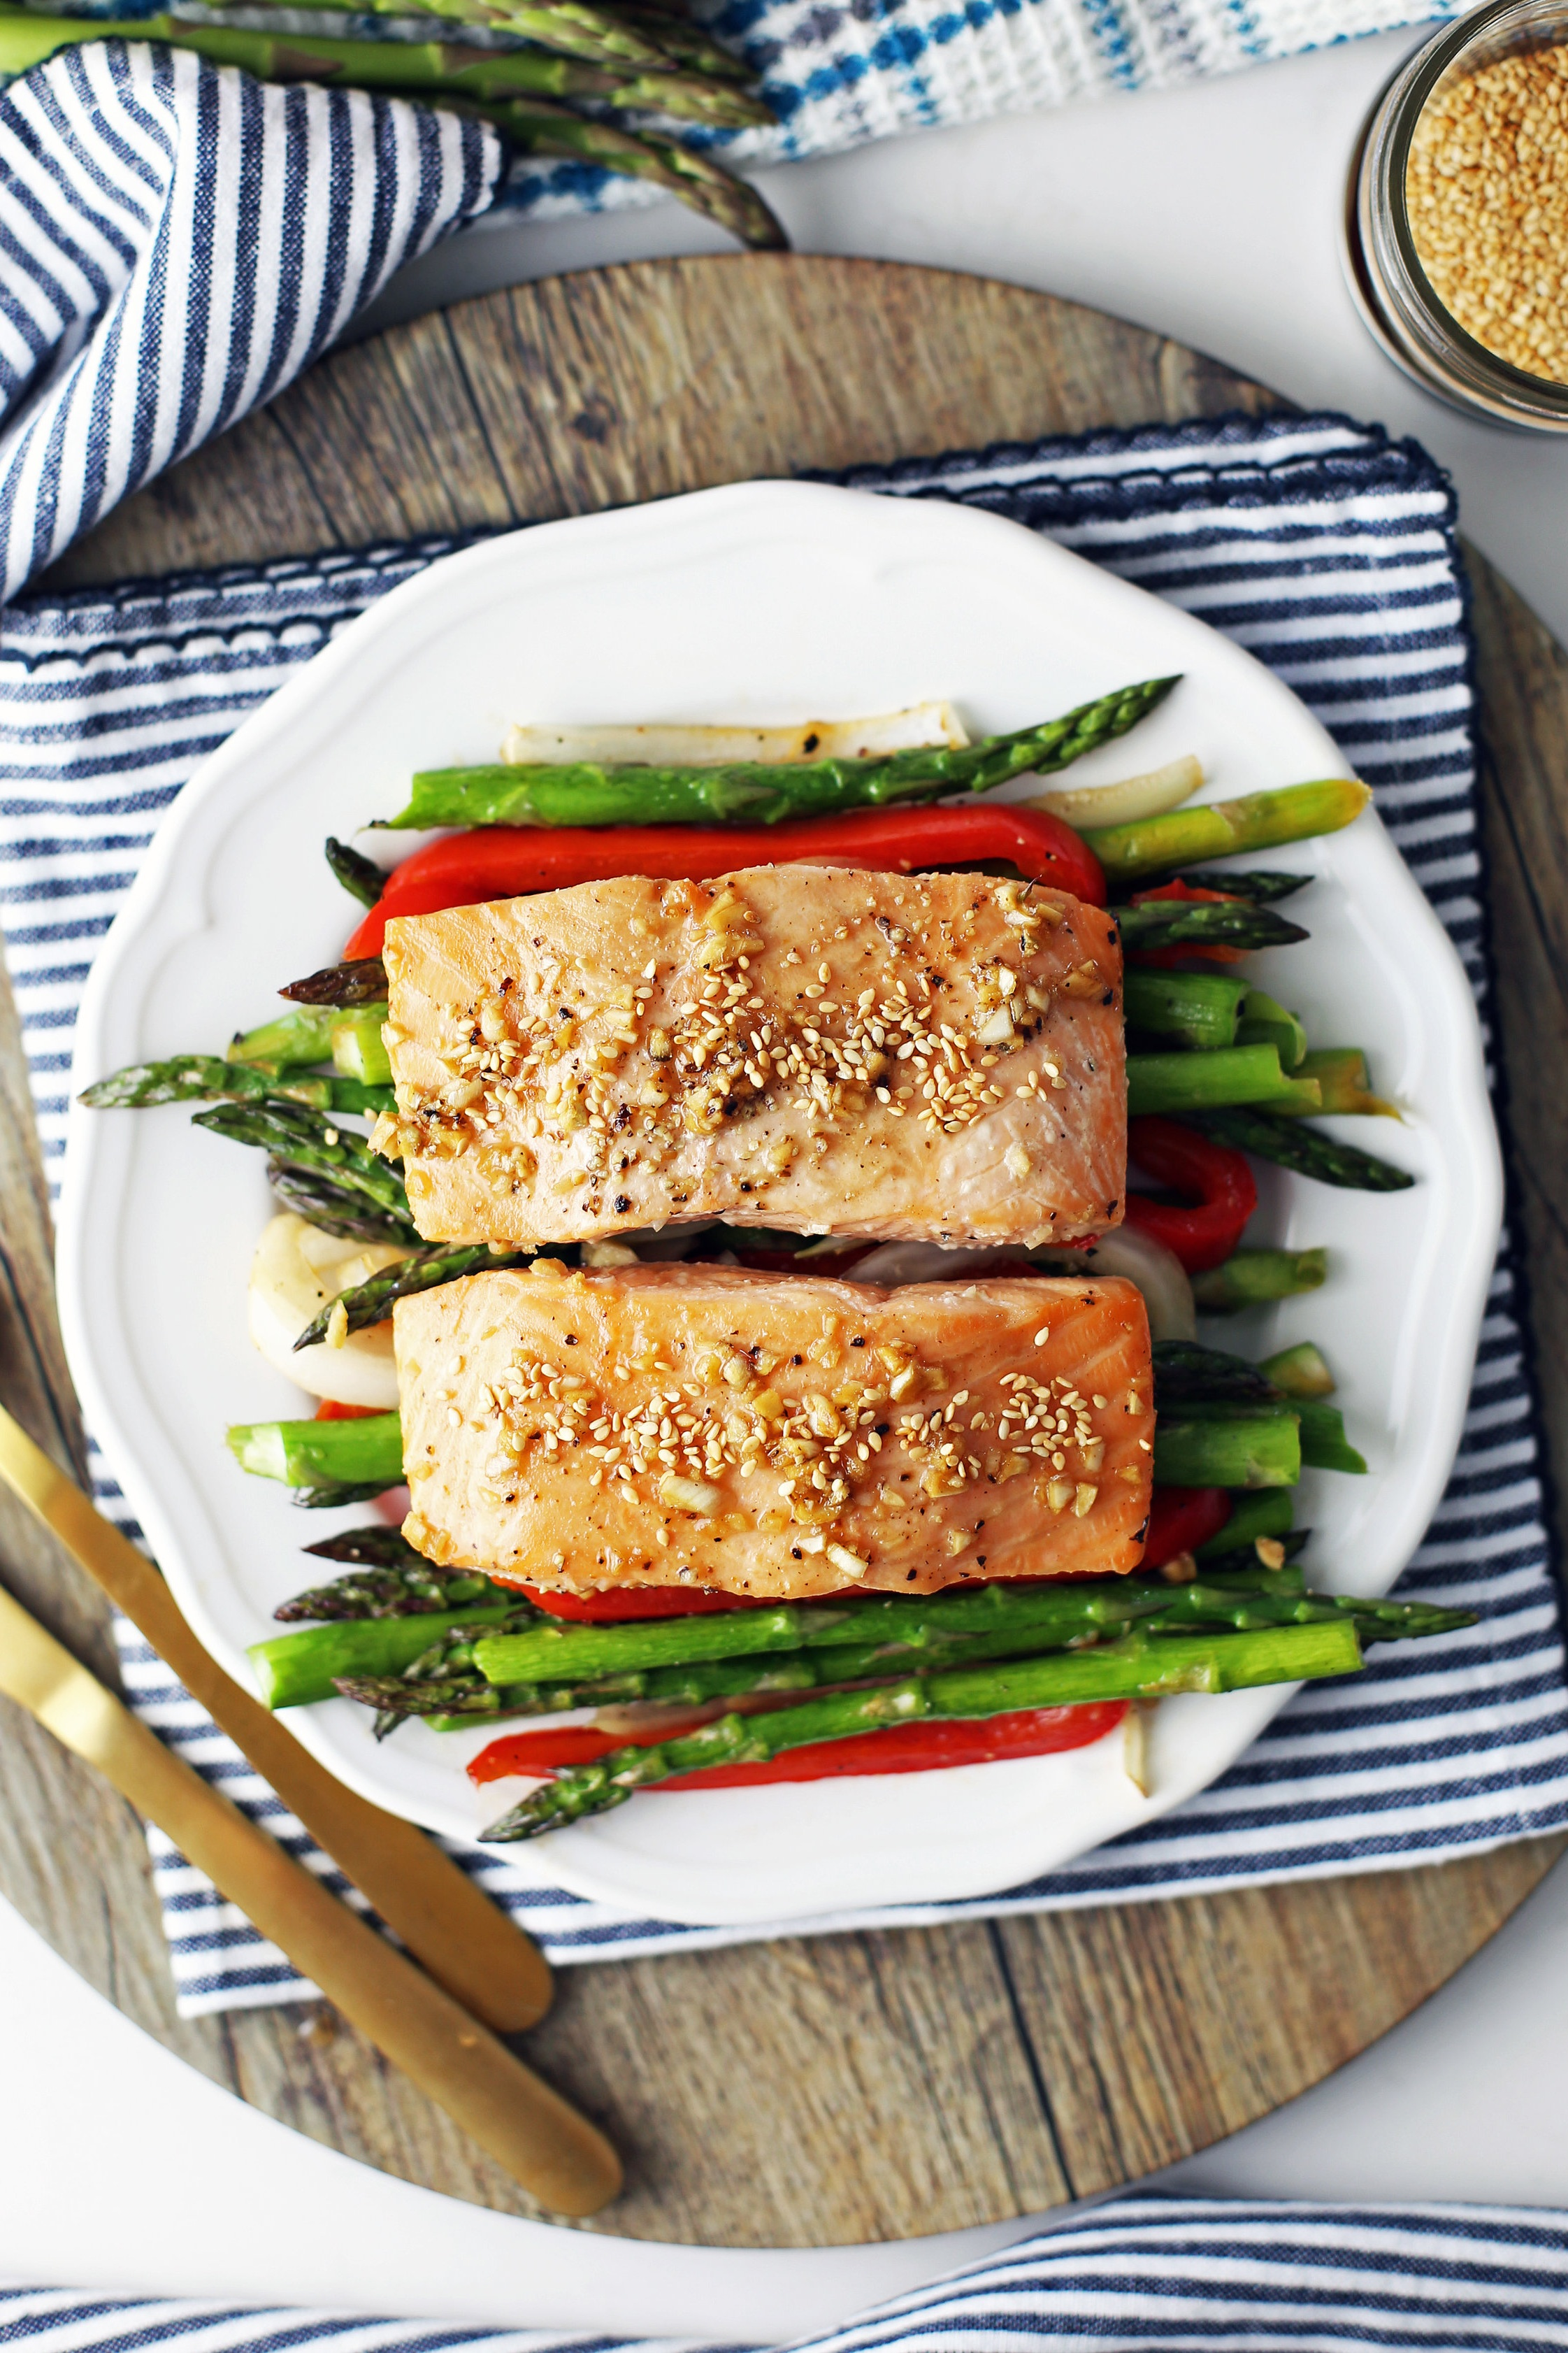 Overhead view of two baked salmon fillets on a bed of roasted asparagus, bell pepper, and onions on a white plate.